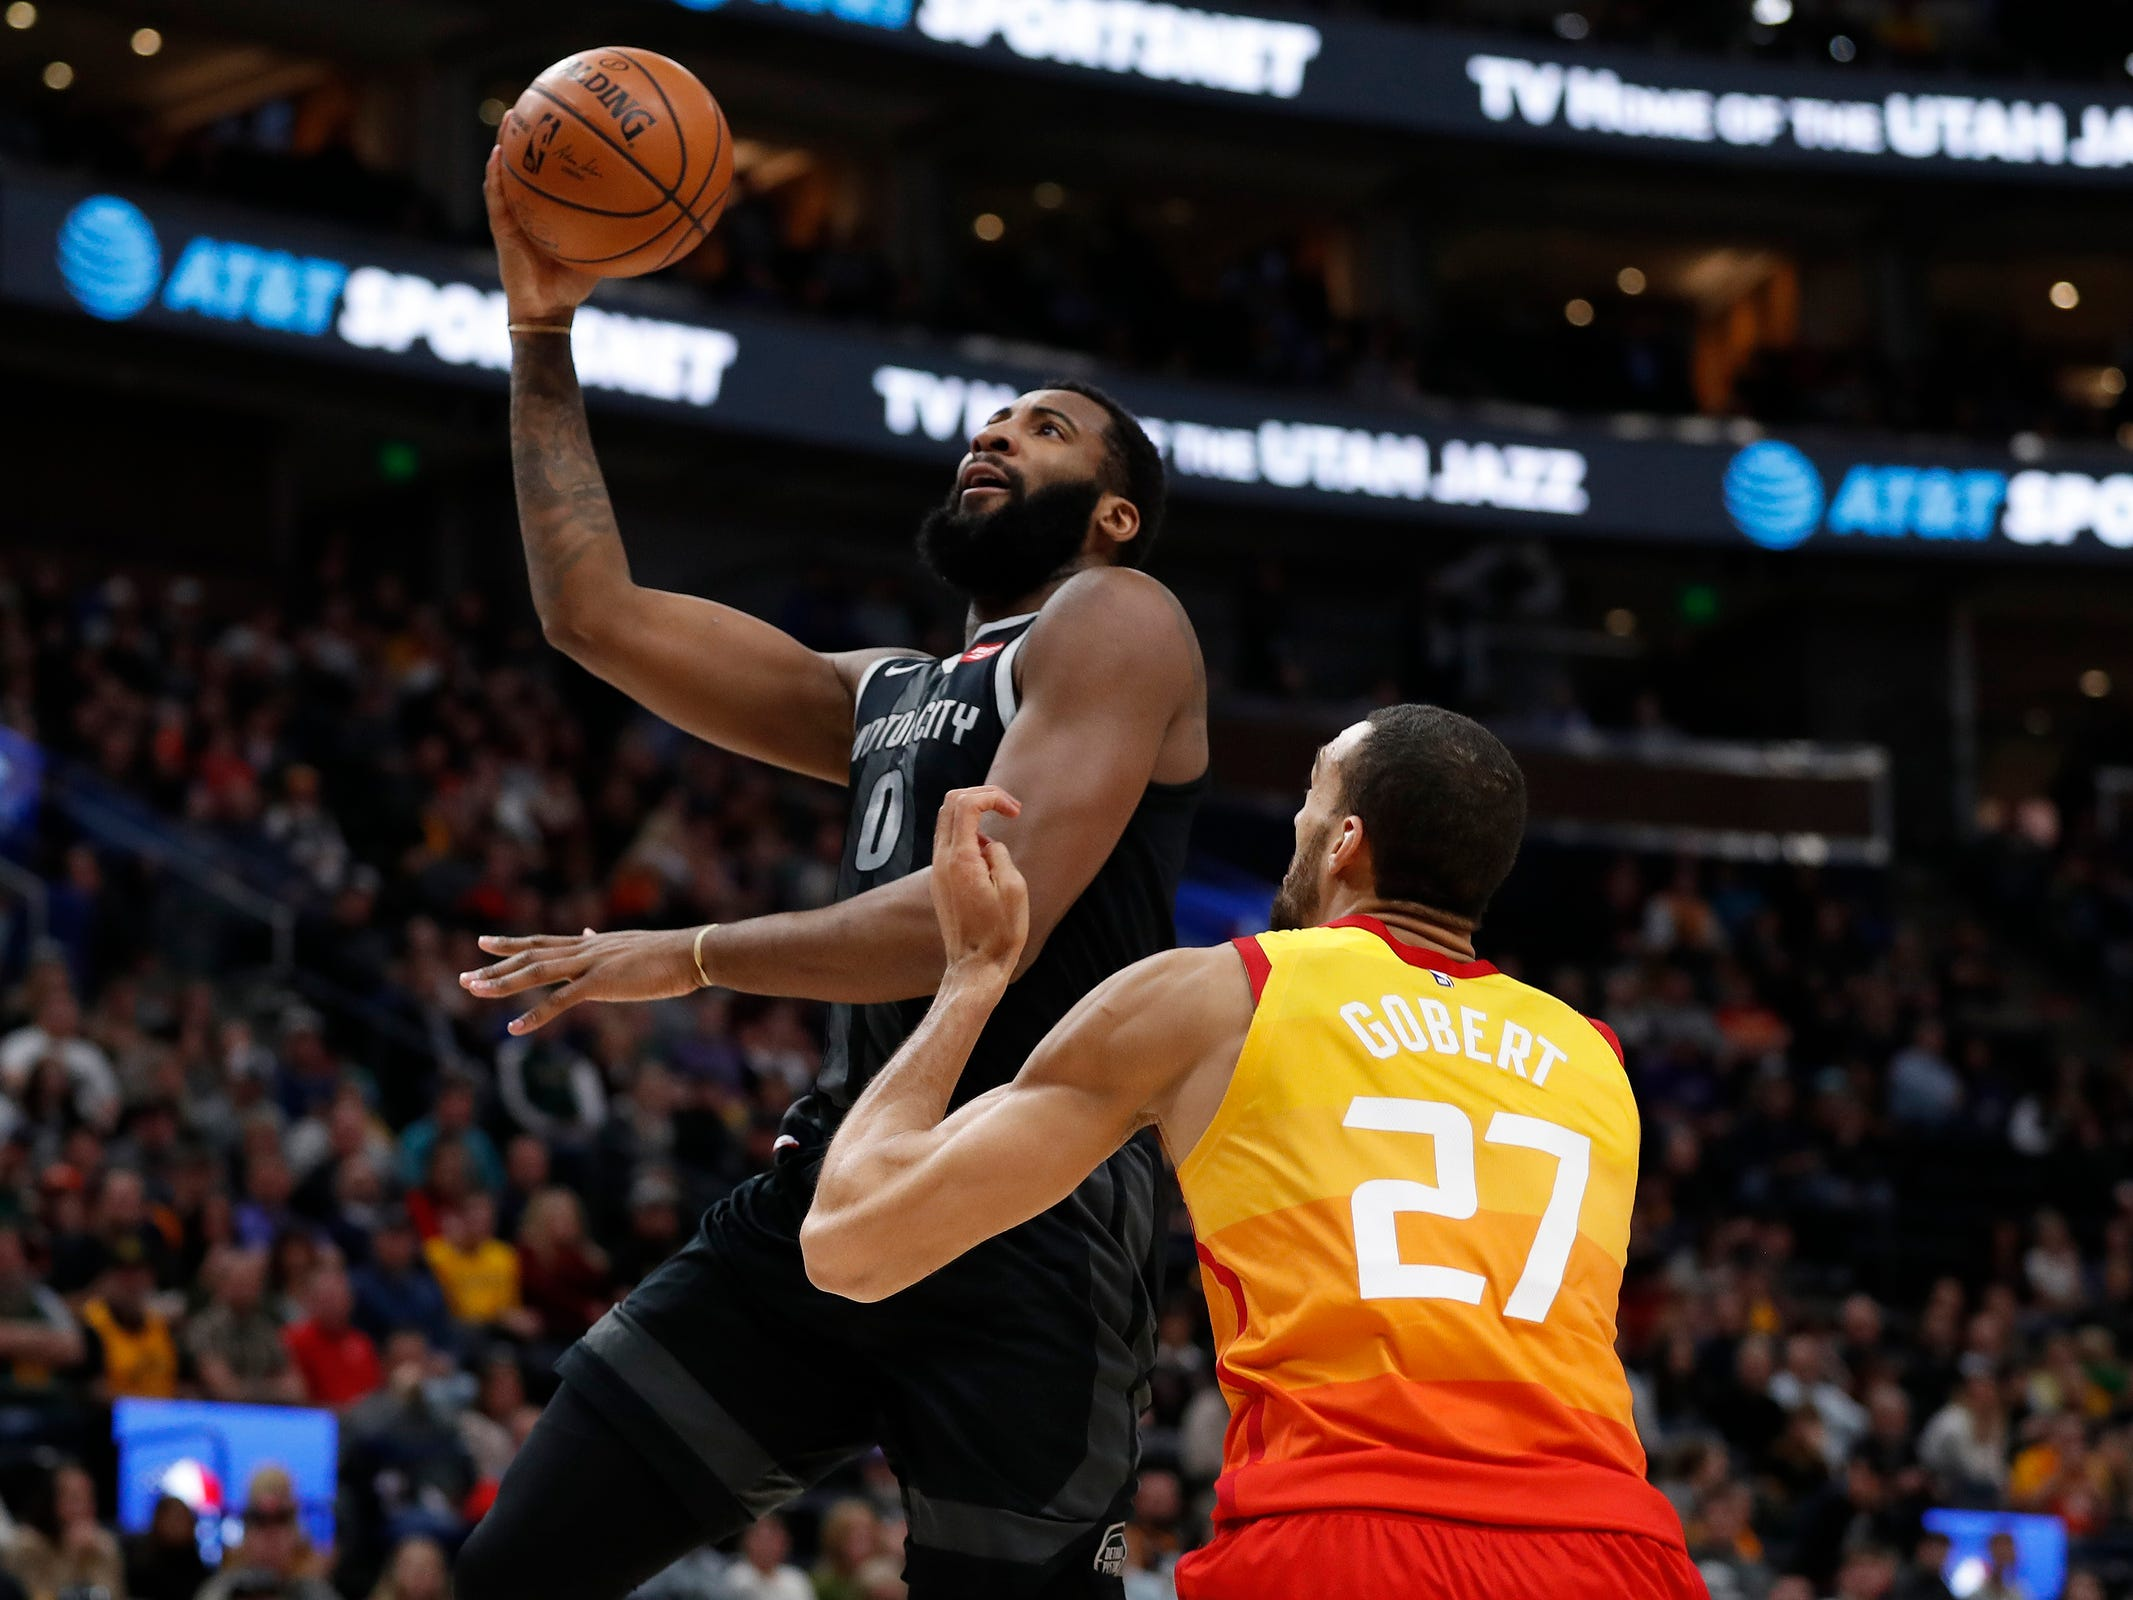 Detroit Pistons center Andre Drummond drives to the hoop against Utah Jazz center Rudy Gobert in the first quarter Monday, Jan. 14, 2019, in Salt Lake City.